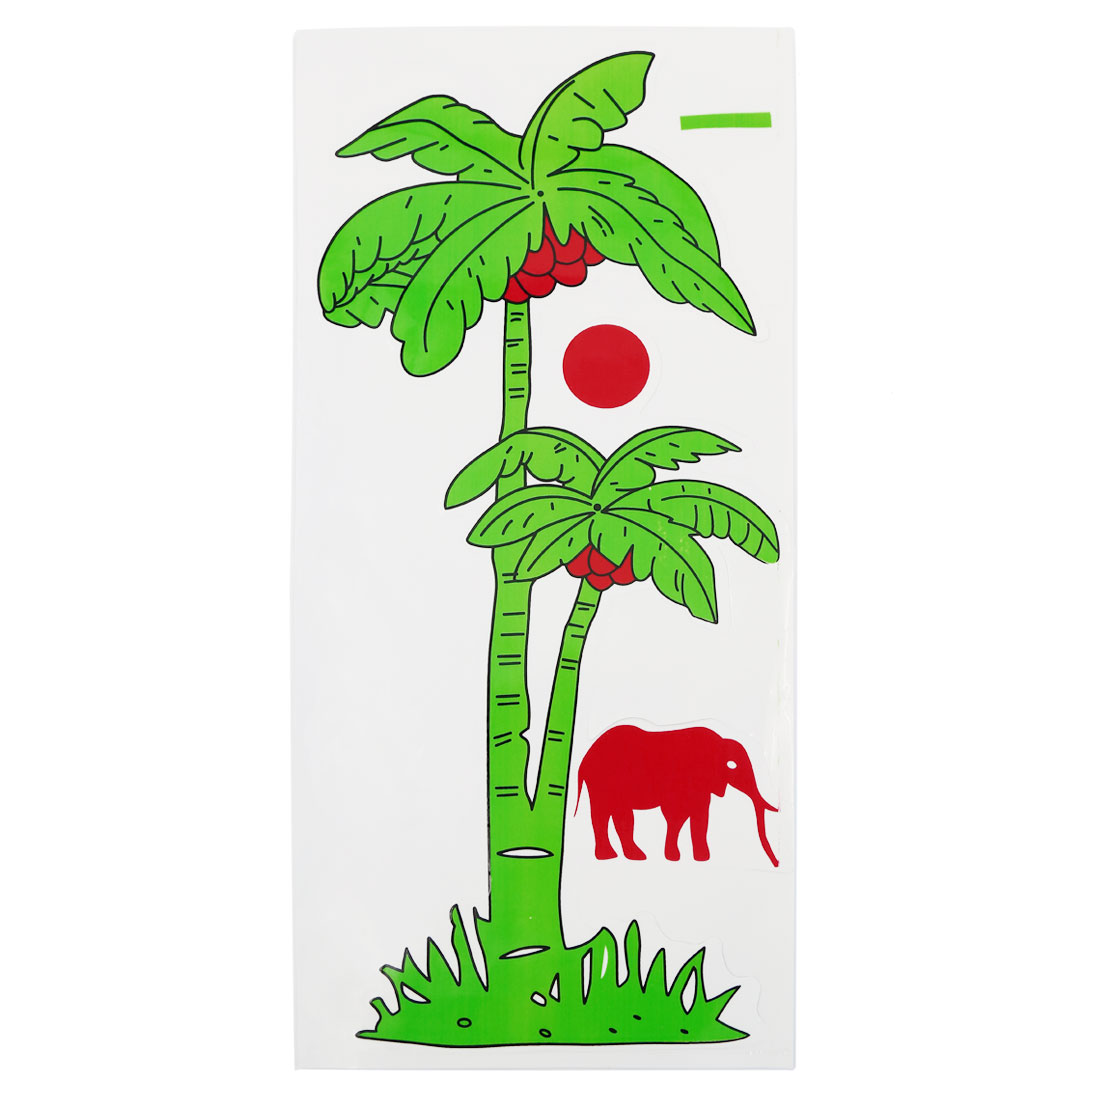 Green Coconut Tree Red Elephant Pattern Sticker Decor Graphic Decal for Car